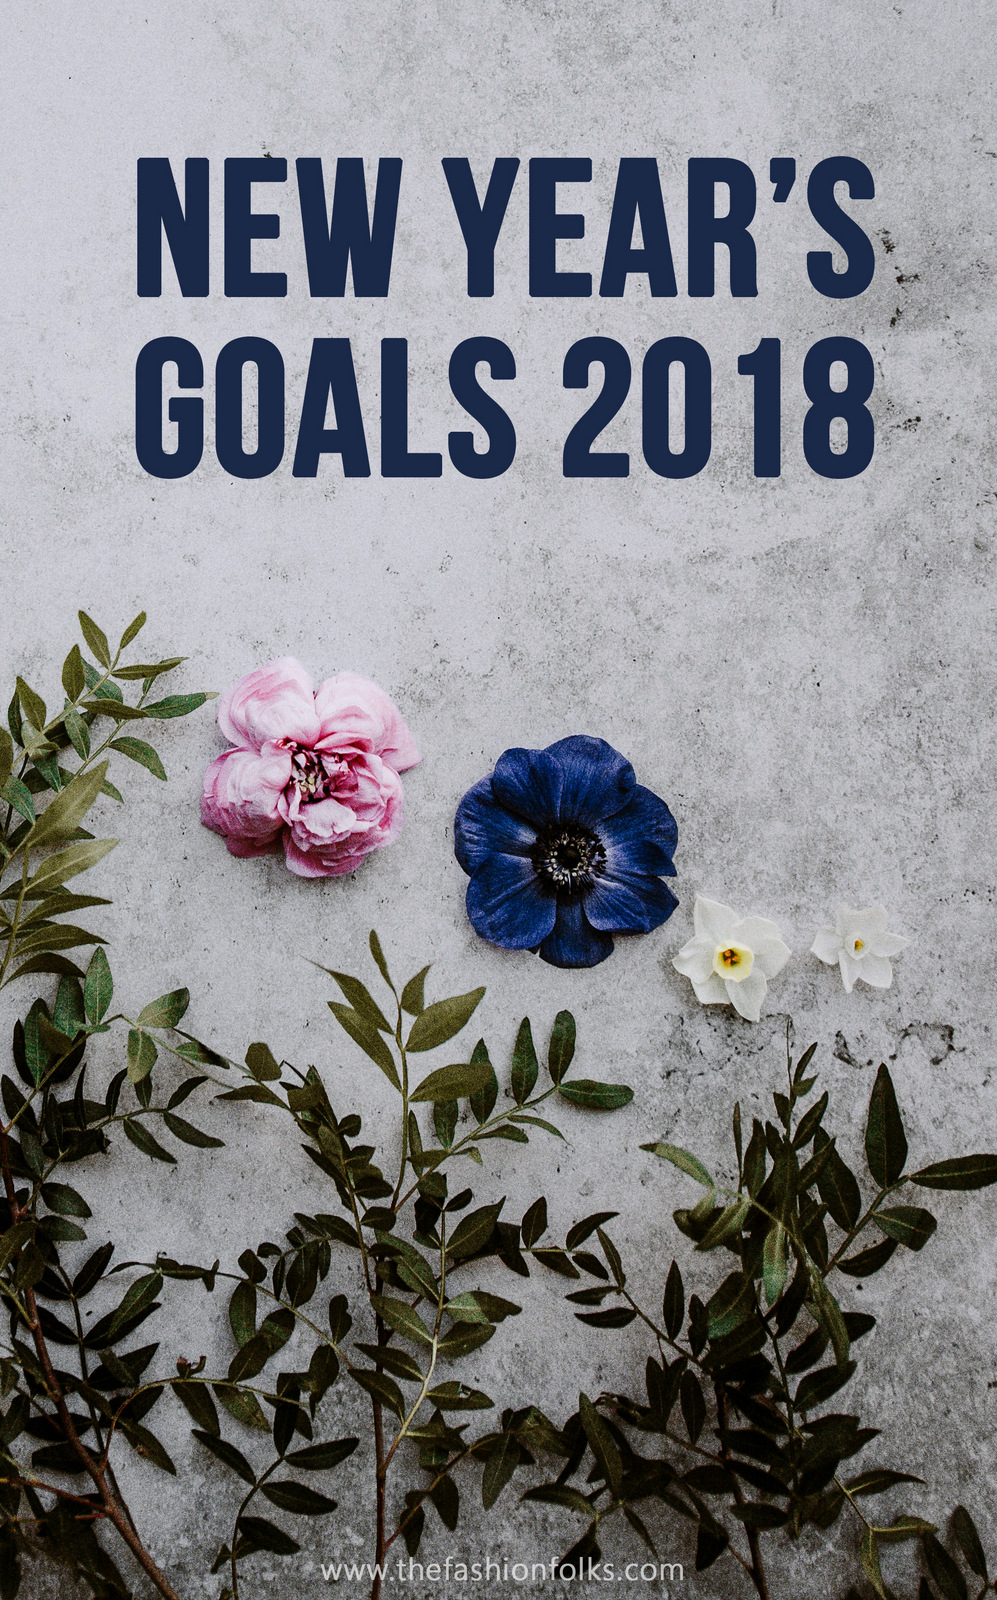 New Year's Goals 2018